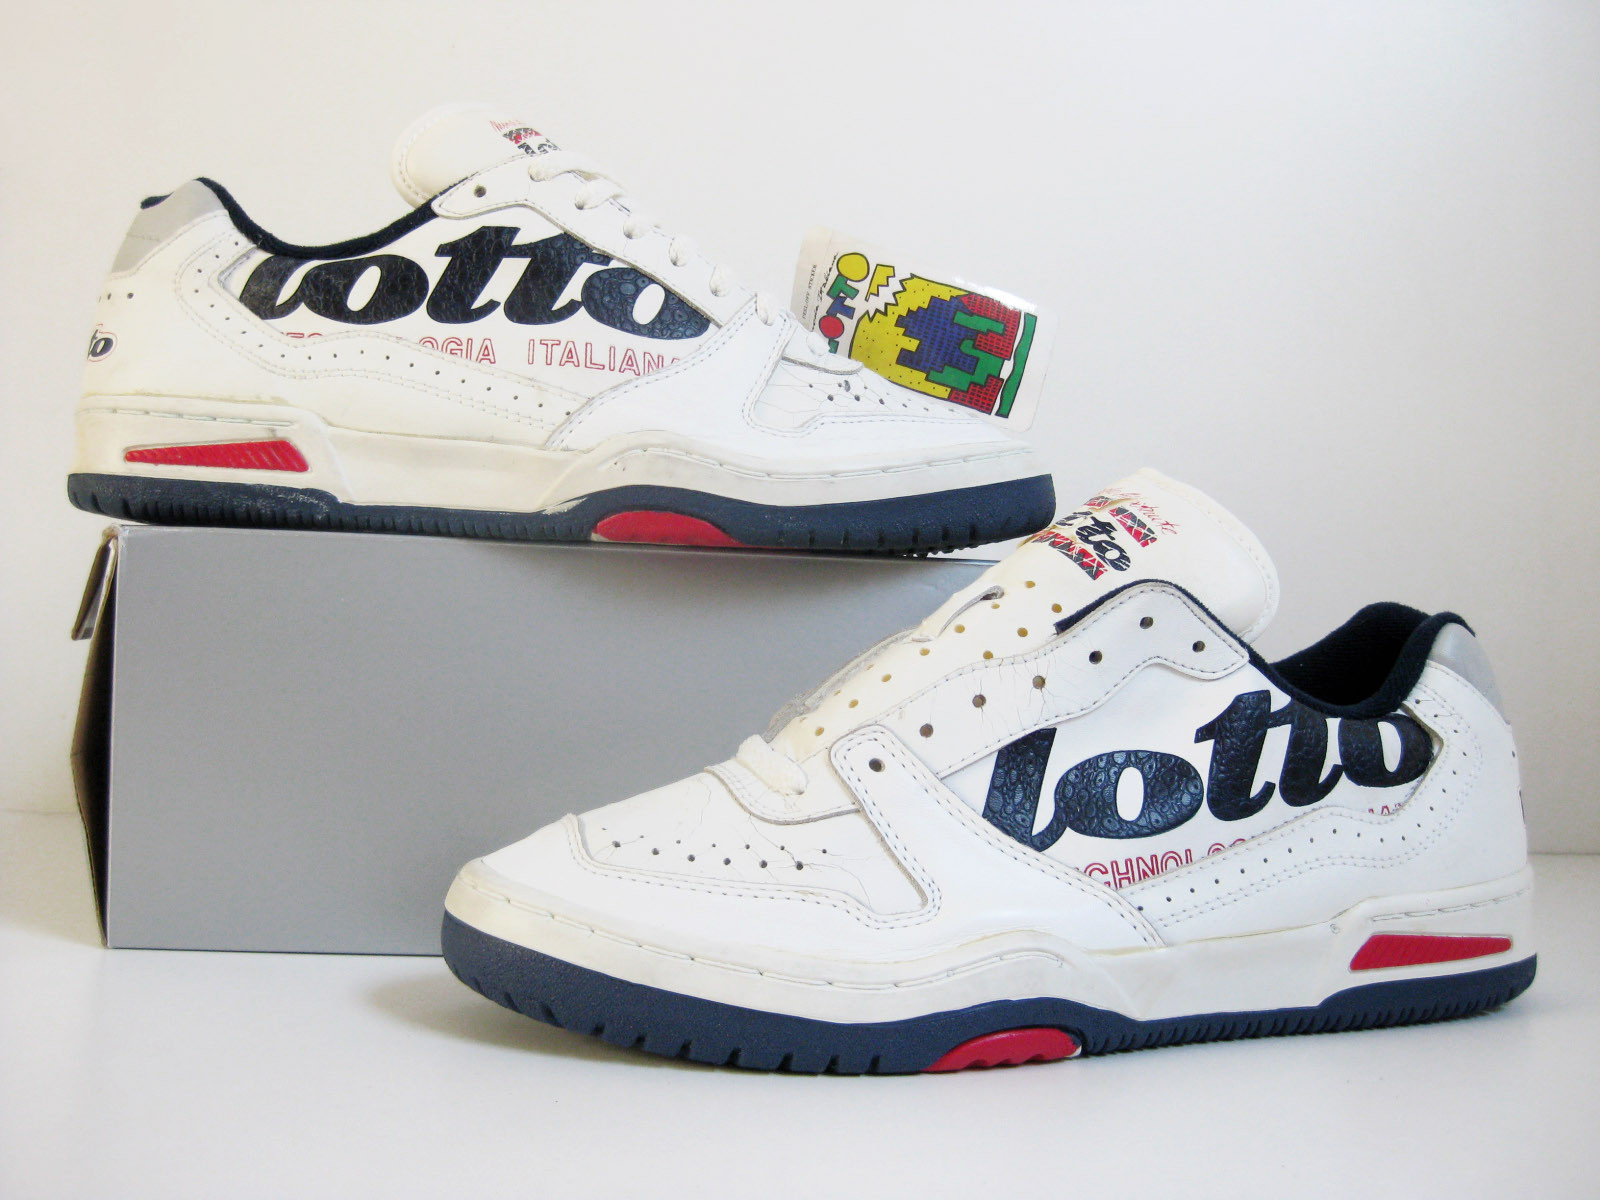 Lotto shoes classics from the 80's Hot shoes, Sneakers